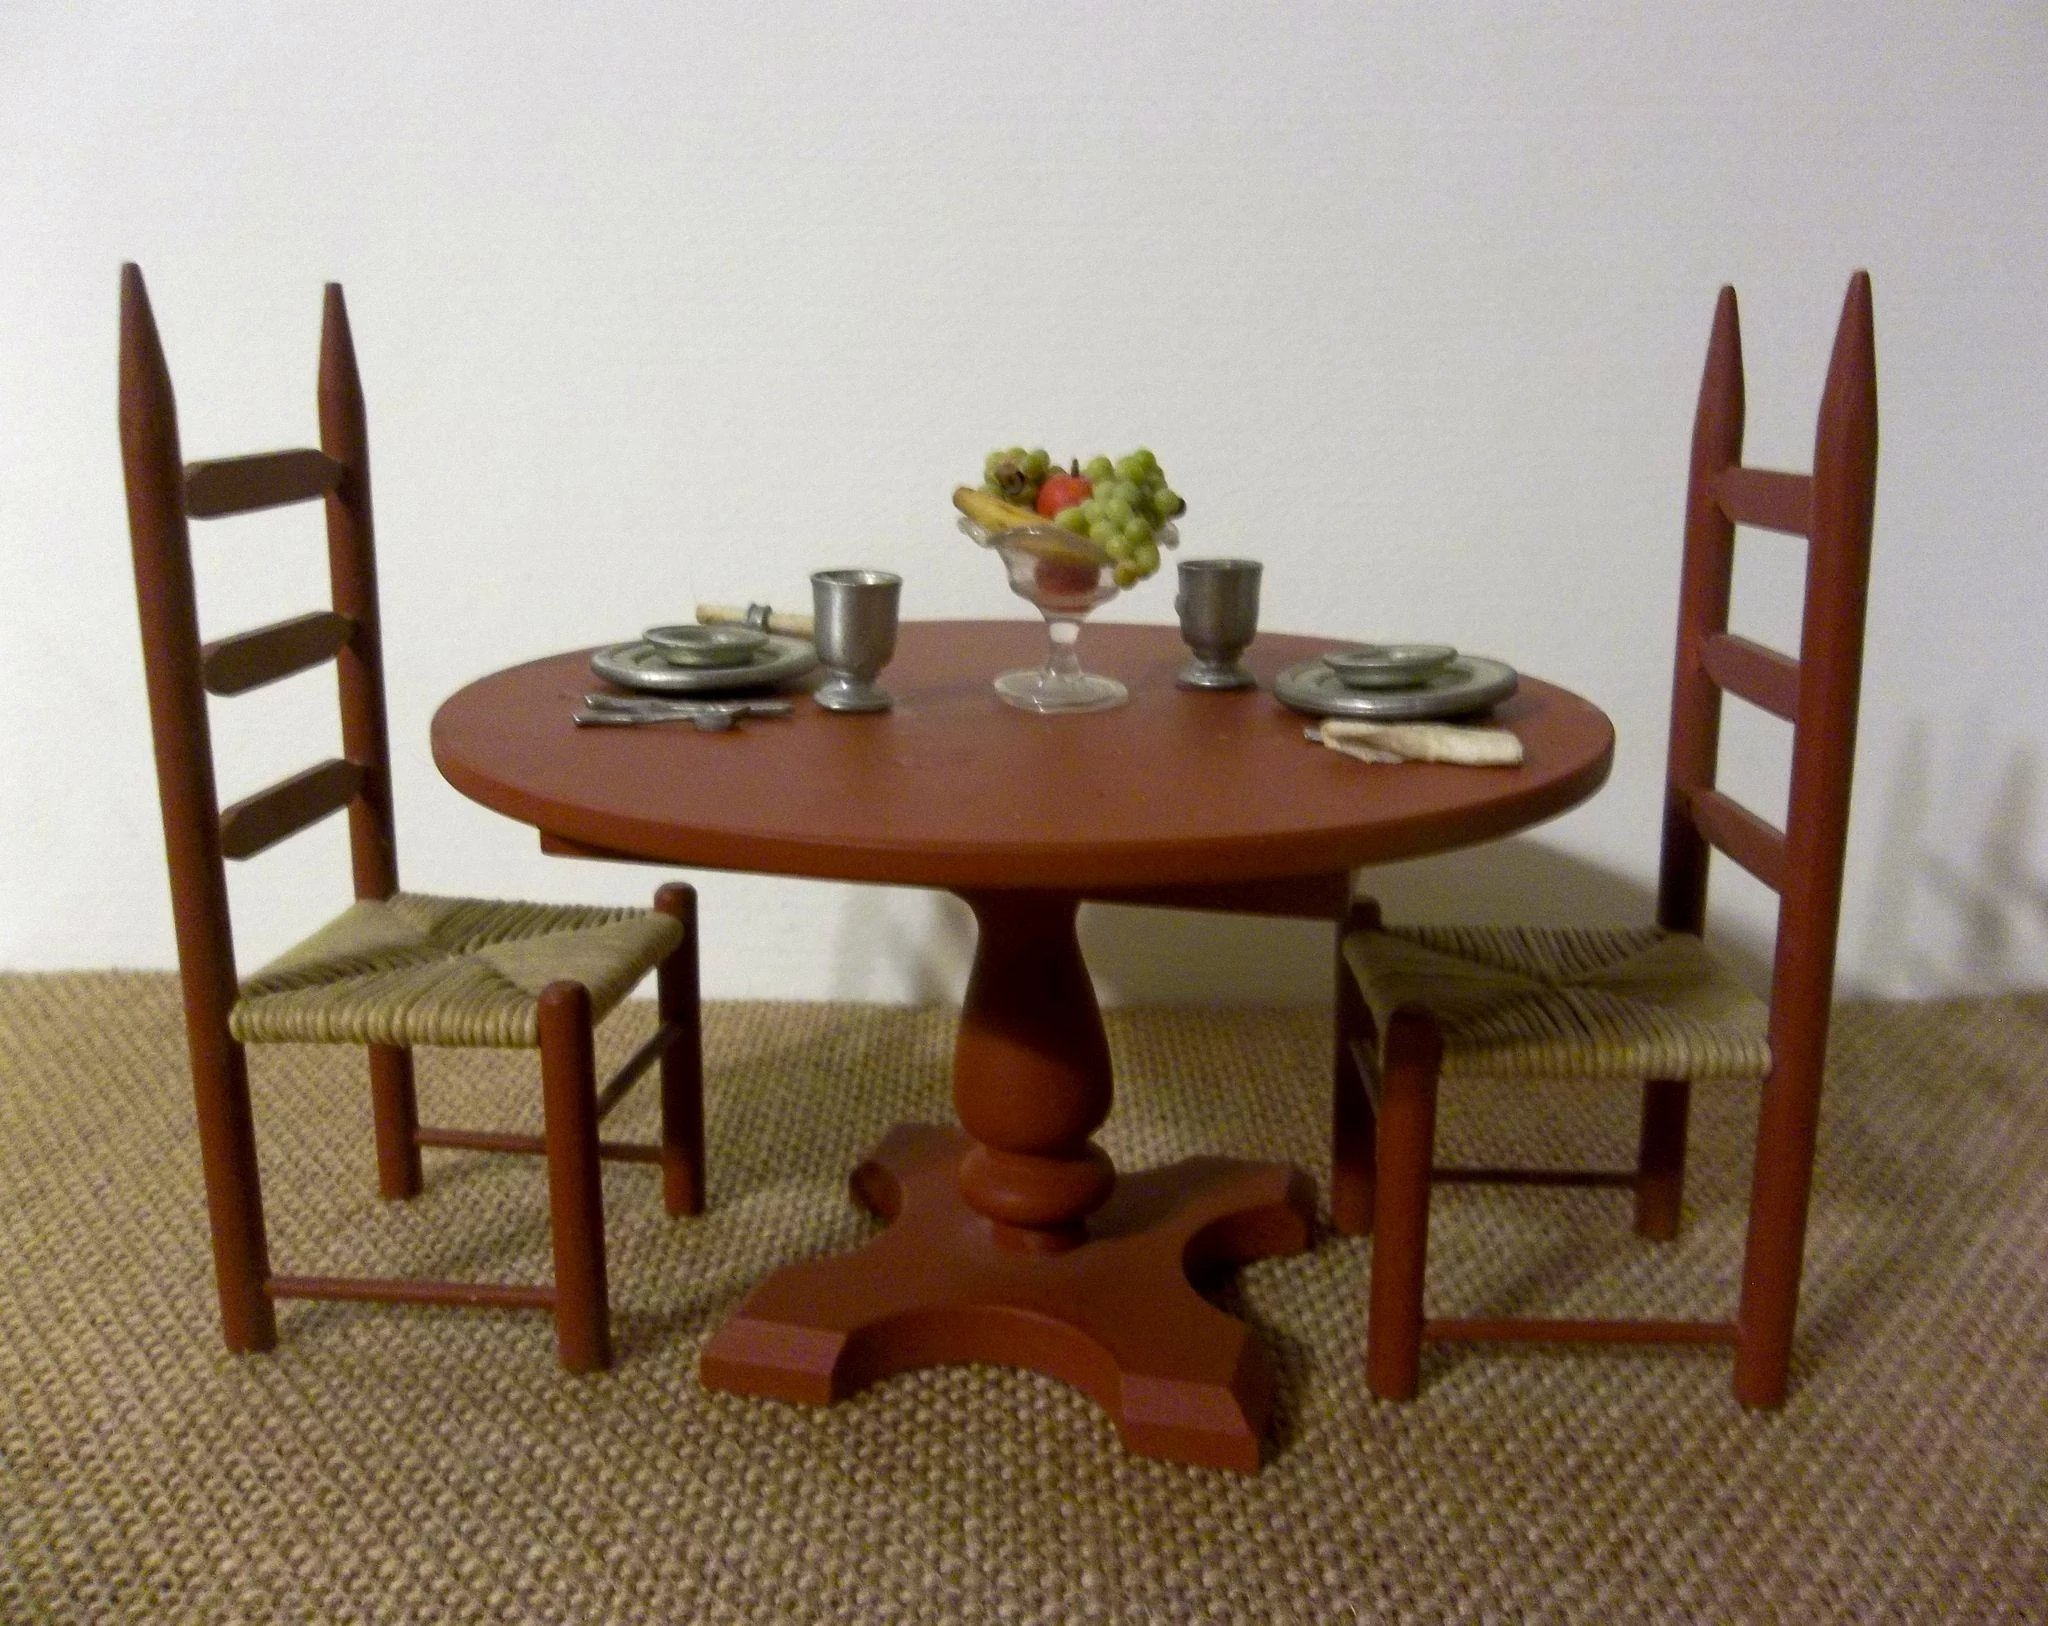 Wonderful Vintage Dollhouse Dining Table And Chair Set With Place